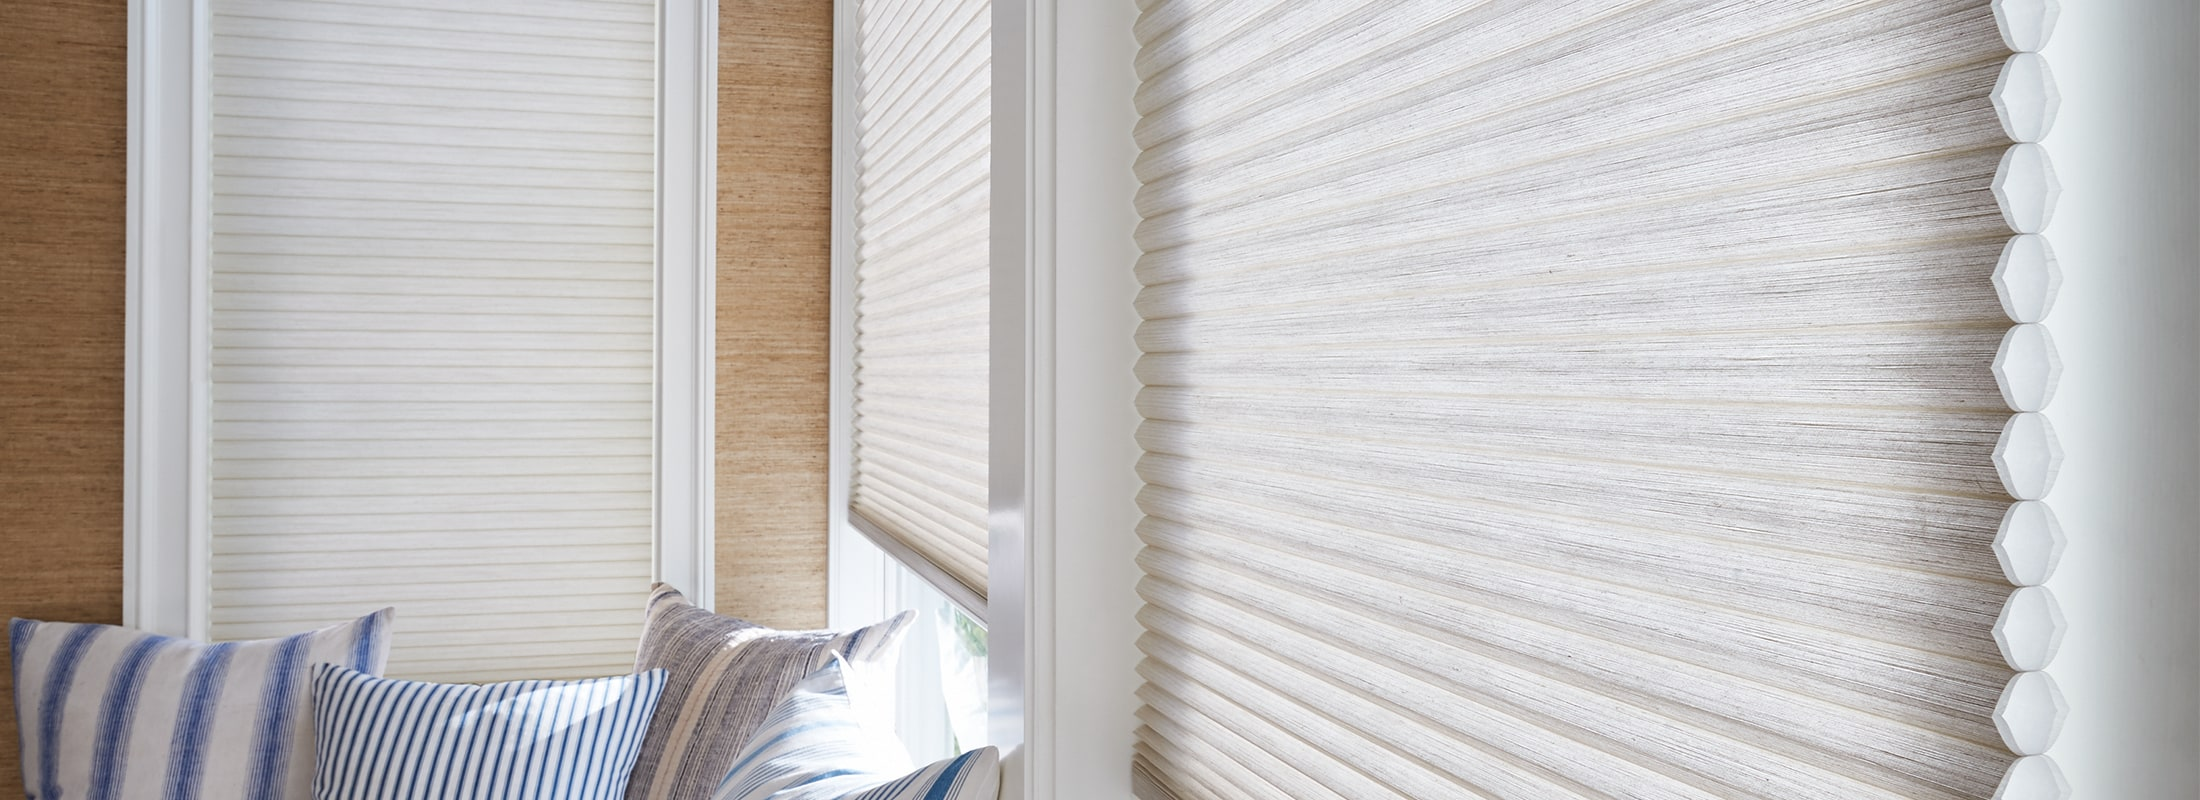 Exceptionnel Cellular Shades In Architella Alexa Desert Sands   Duette With Closeup ...